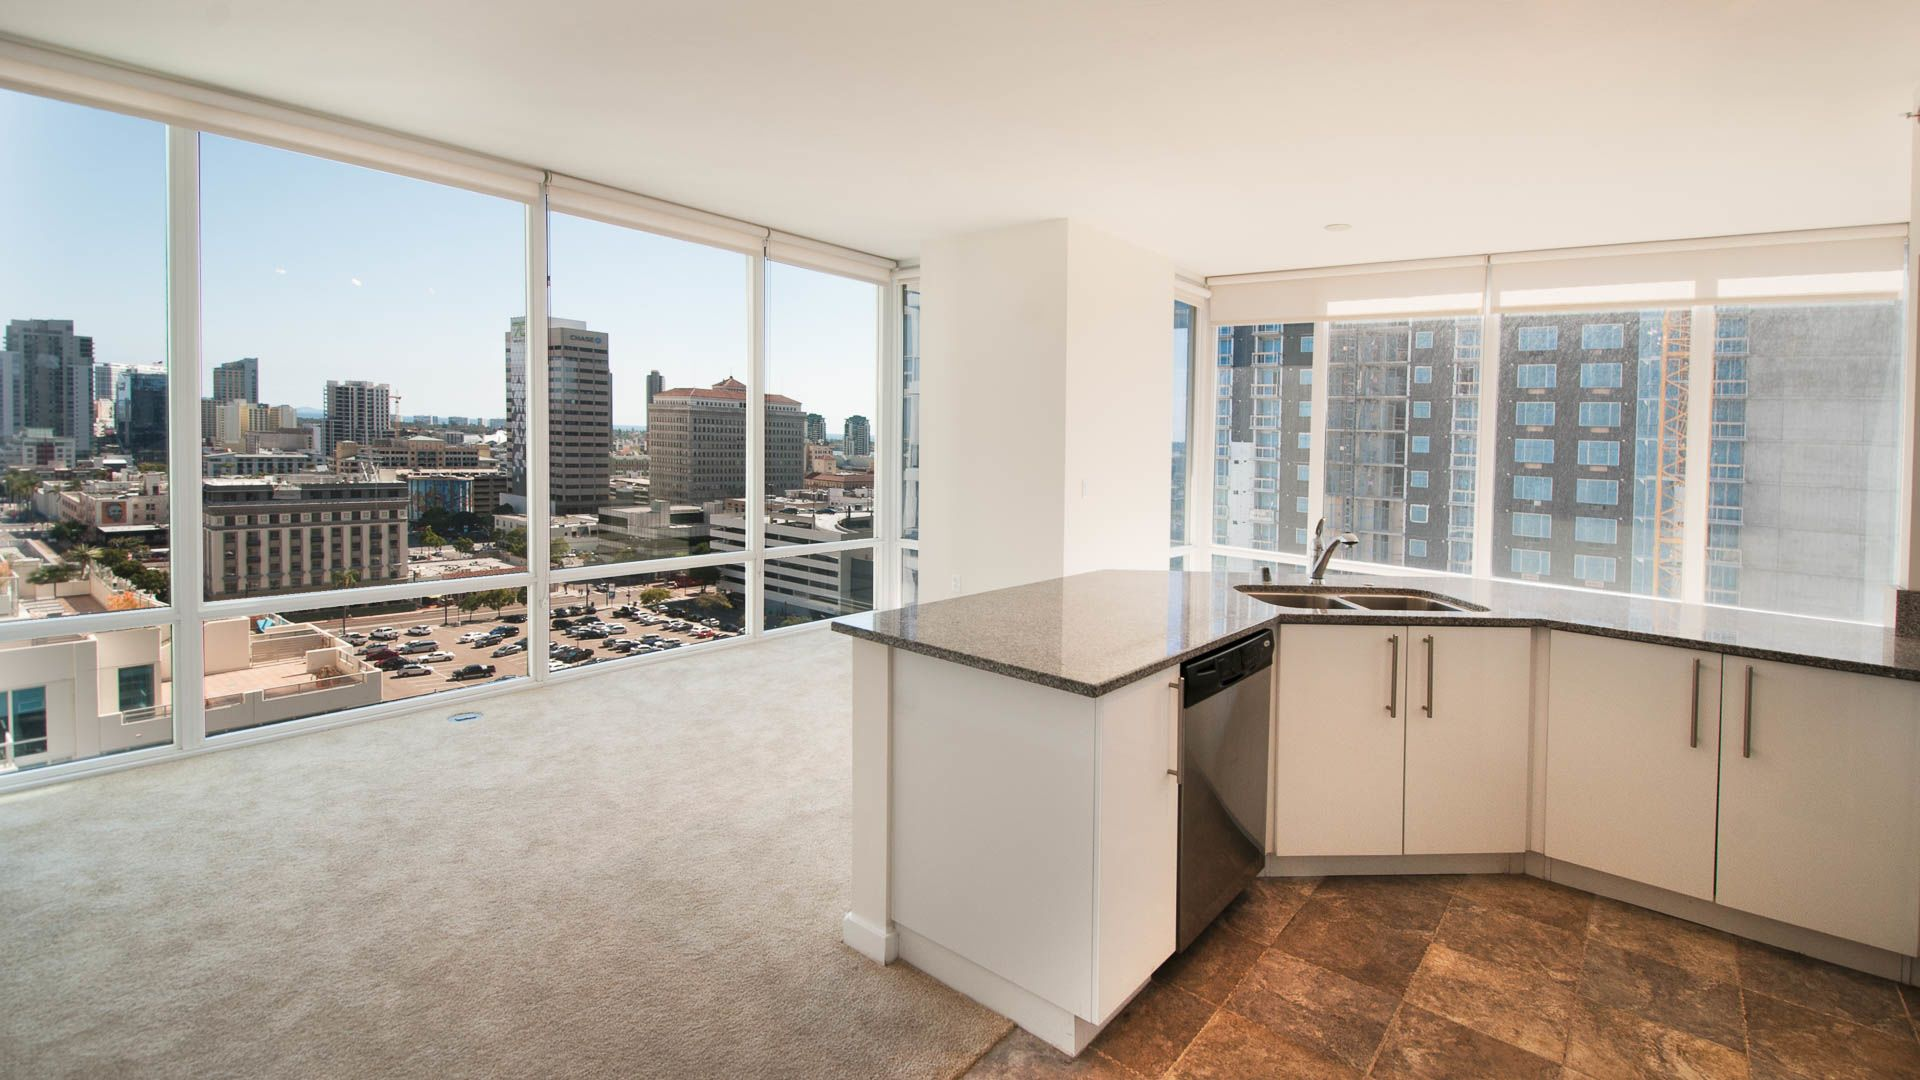 vantage pointe apartments - downtown san diego - 1281 9th avenue